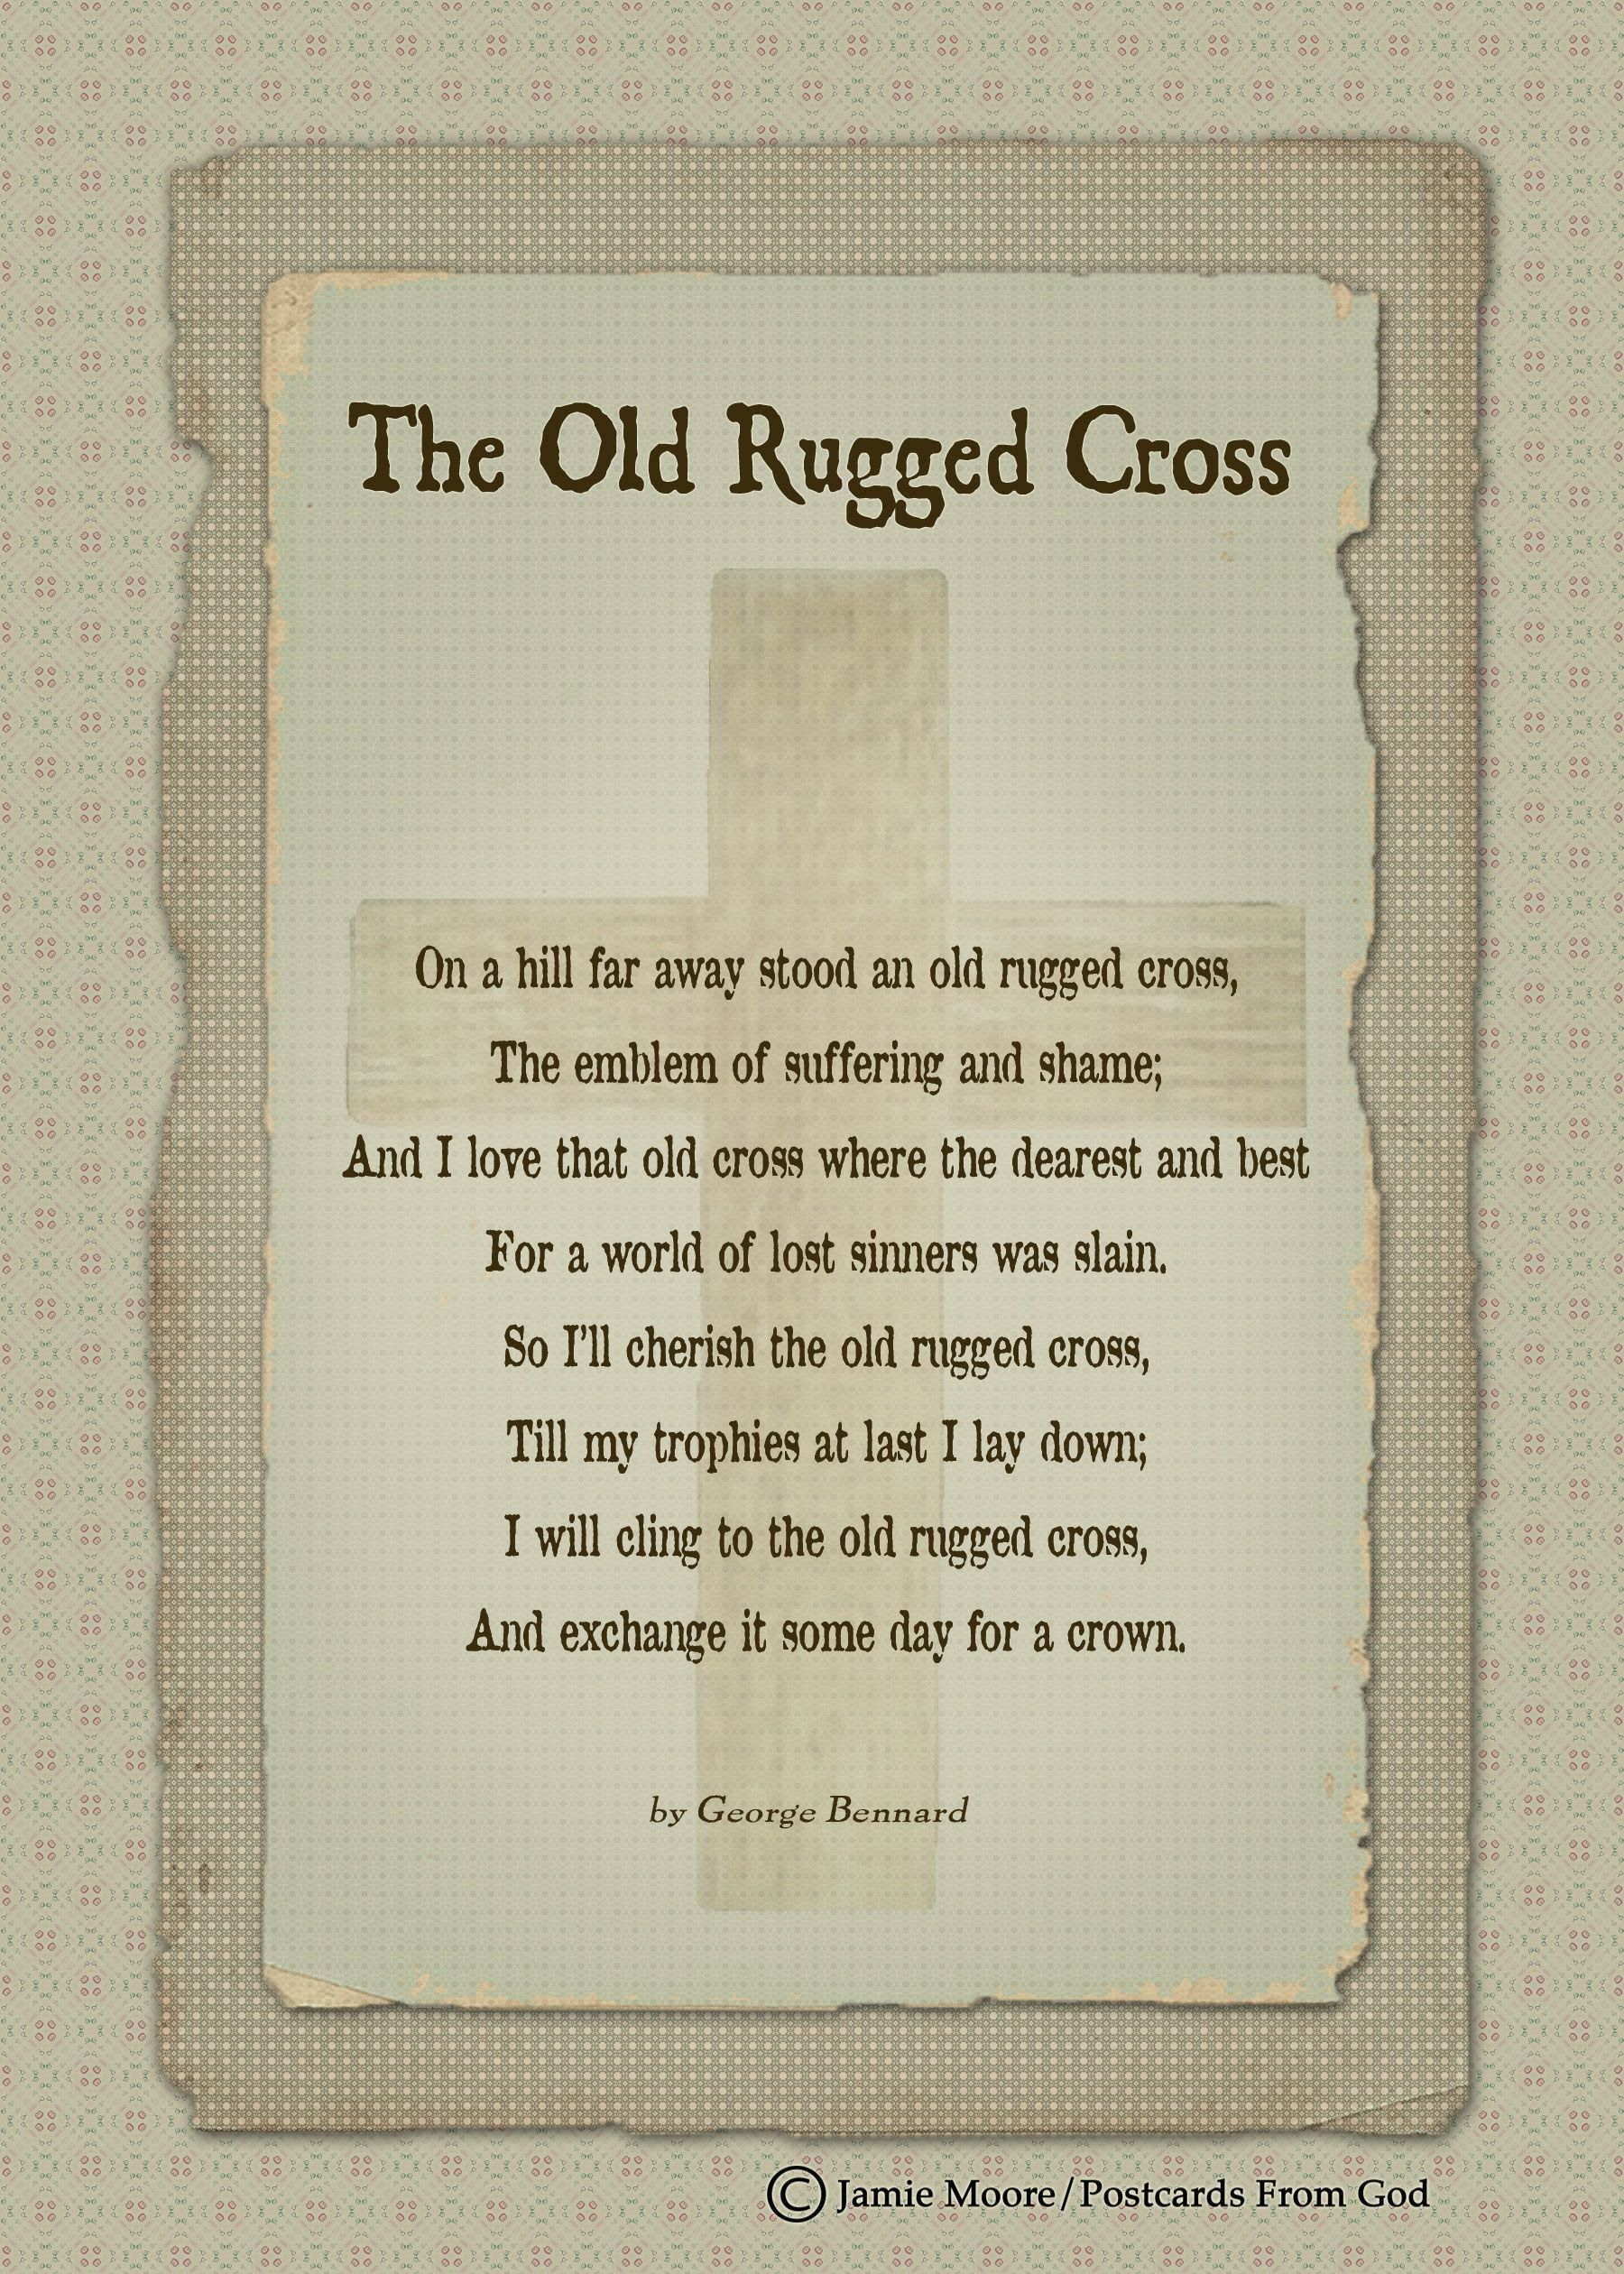 I Will Cling To The Old Rugged Cross And Exchange It Some